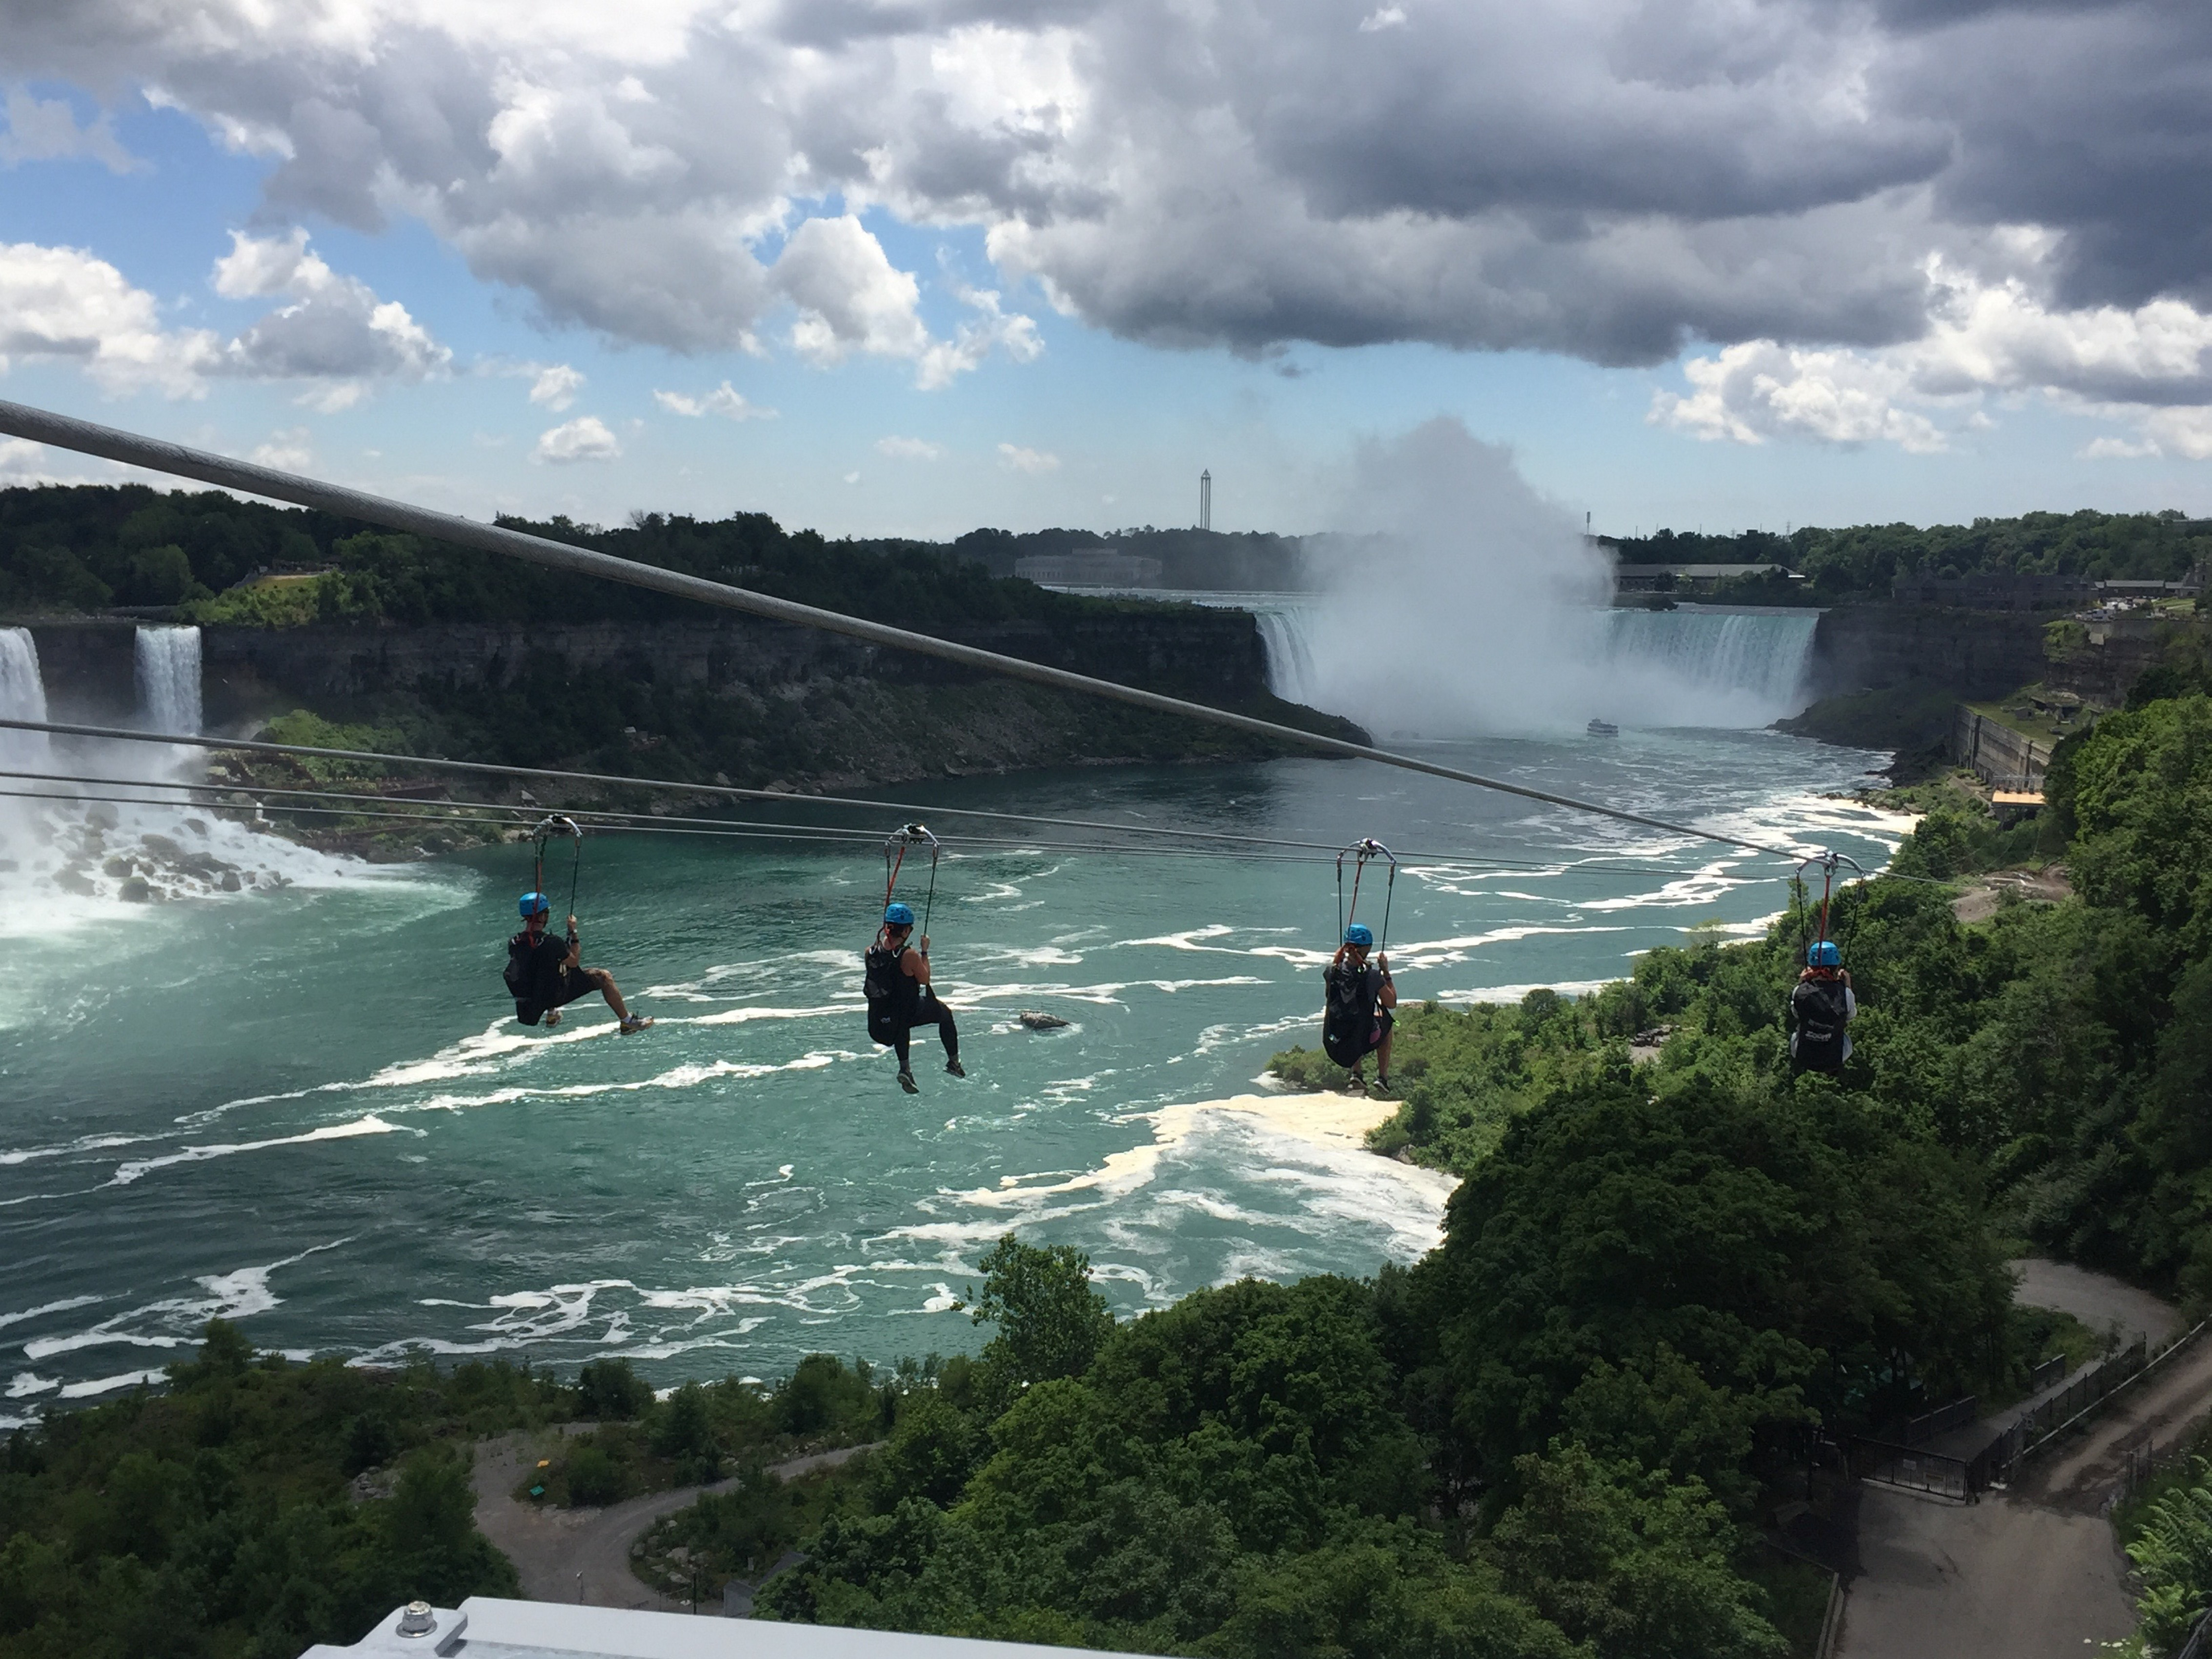 WildPlay's MistRider Zipline to the Falls in Niagara Falls, Ont. opens to the public Friday.